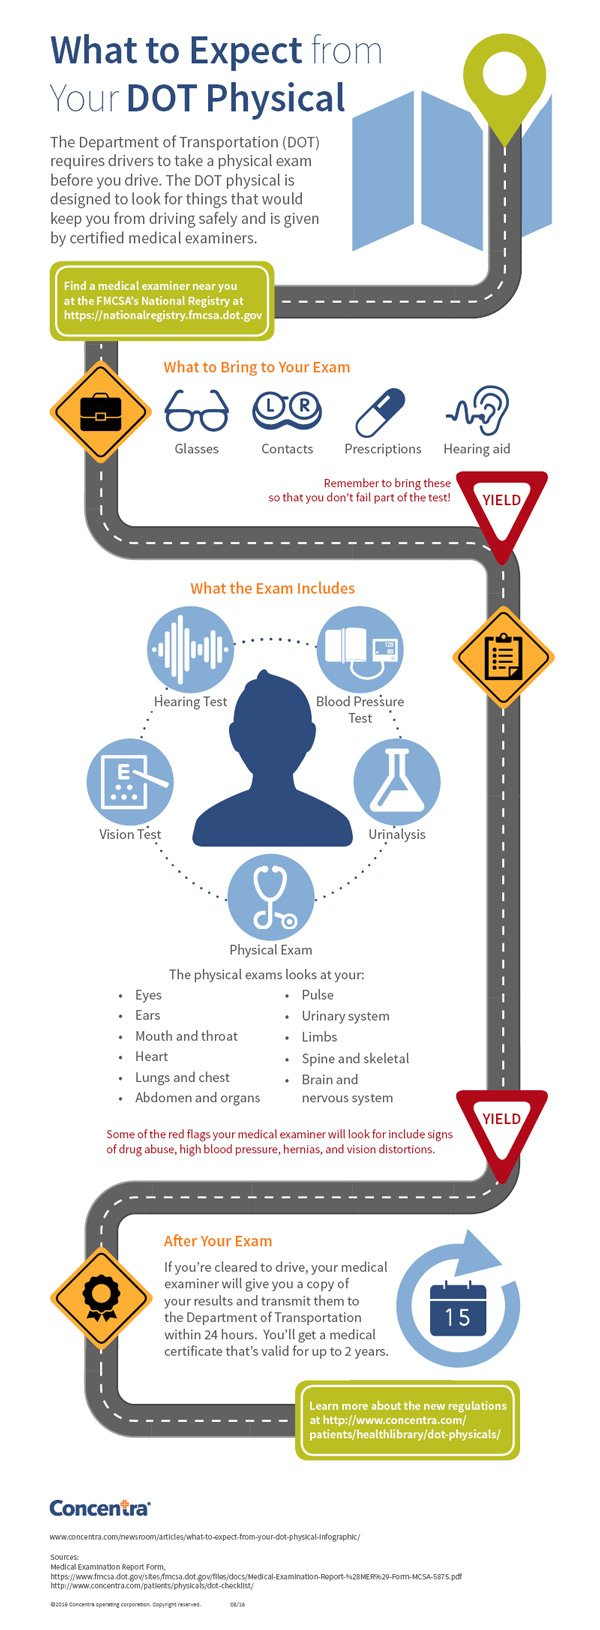 Concentra-DOT-Physical-Occ-Health-Infographic-Final